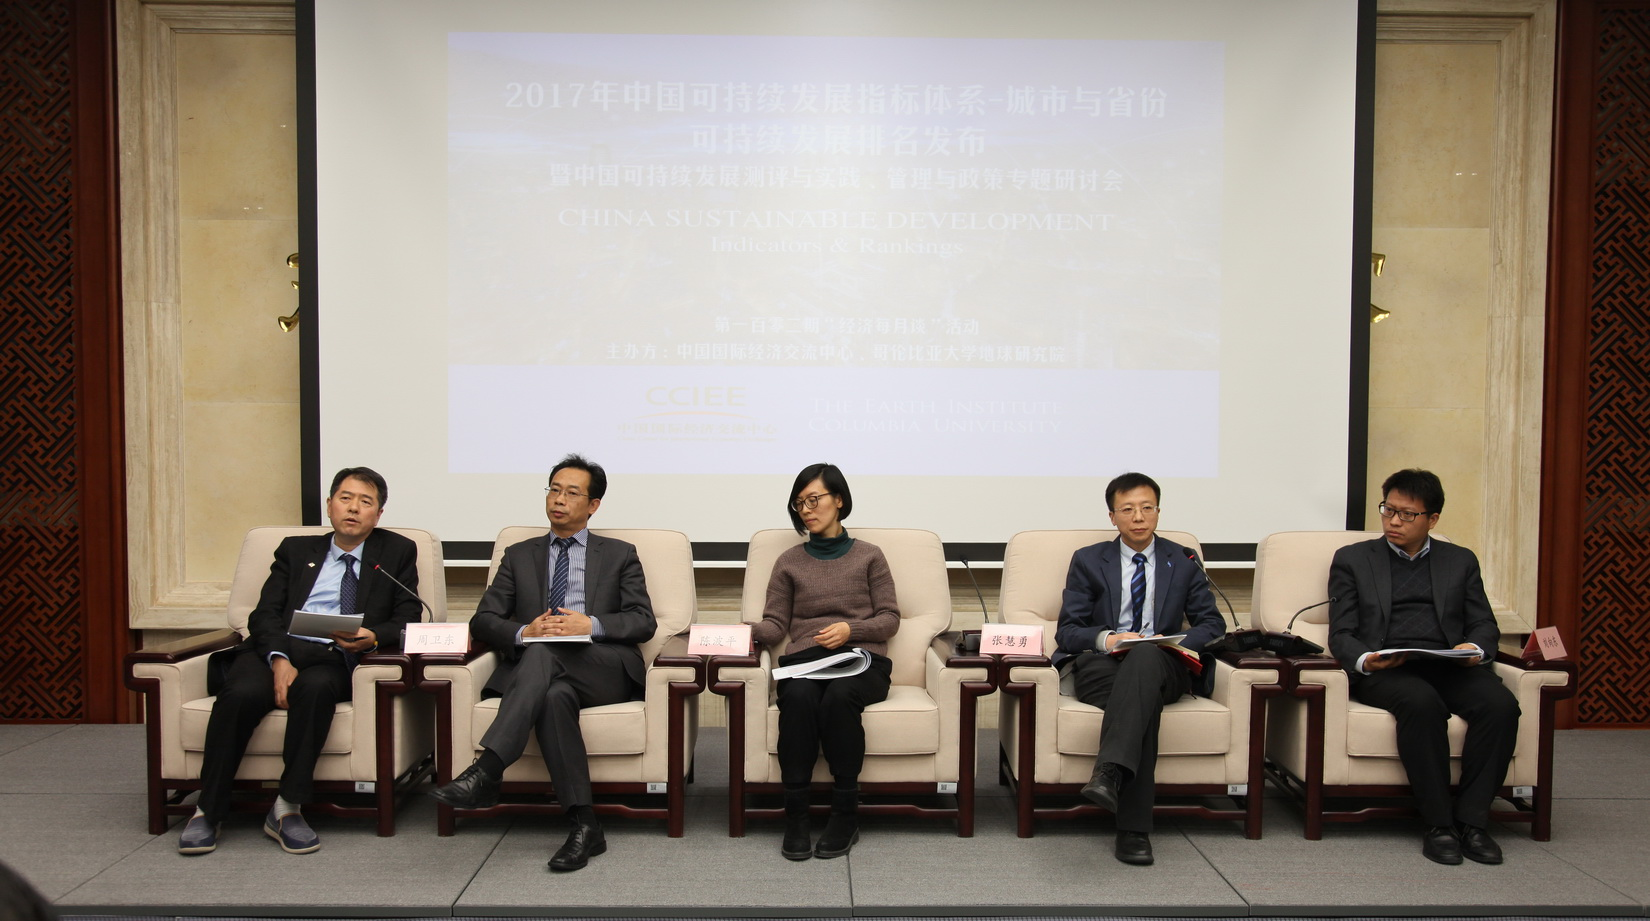 CCIEE and The Earth Institute of Columbia University Jointly Launched the China Sustainable Development Indicators & Rankings